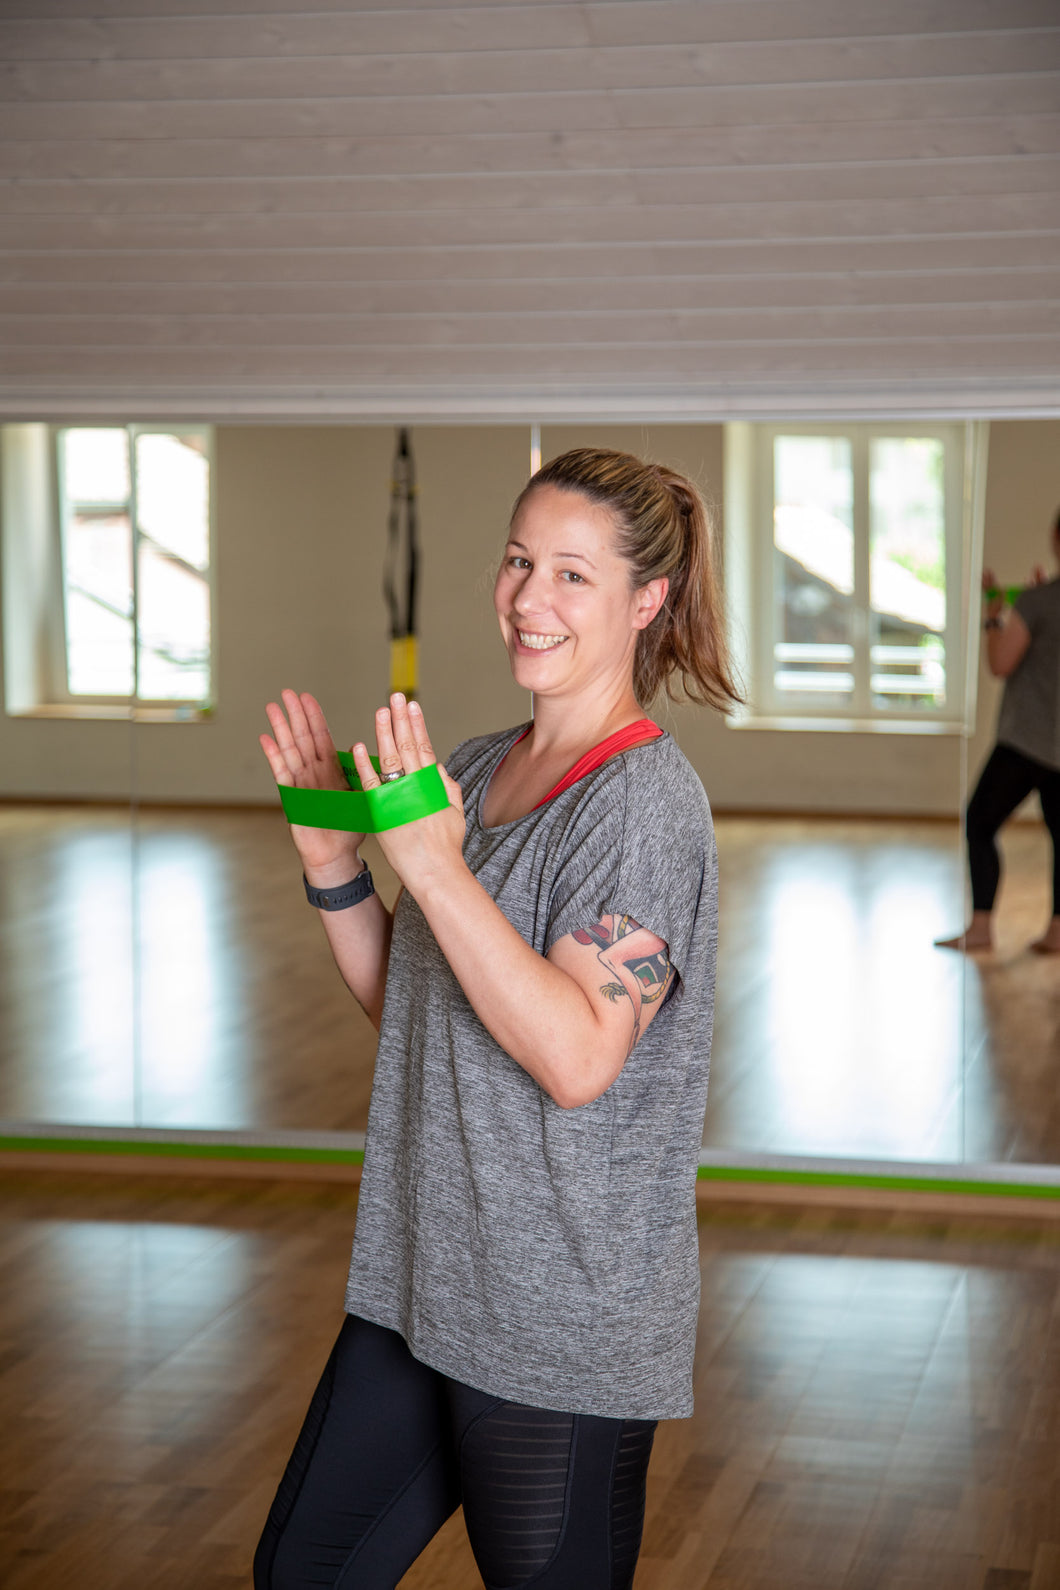 Studio1-dance without limits GmbH, 1x 5er Abo Fitness und Tanz